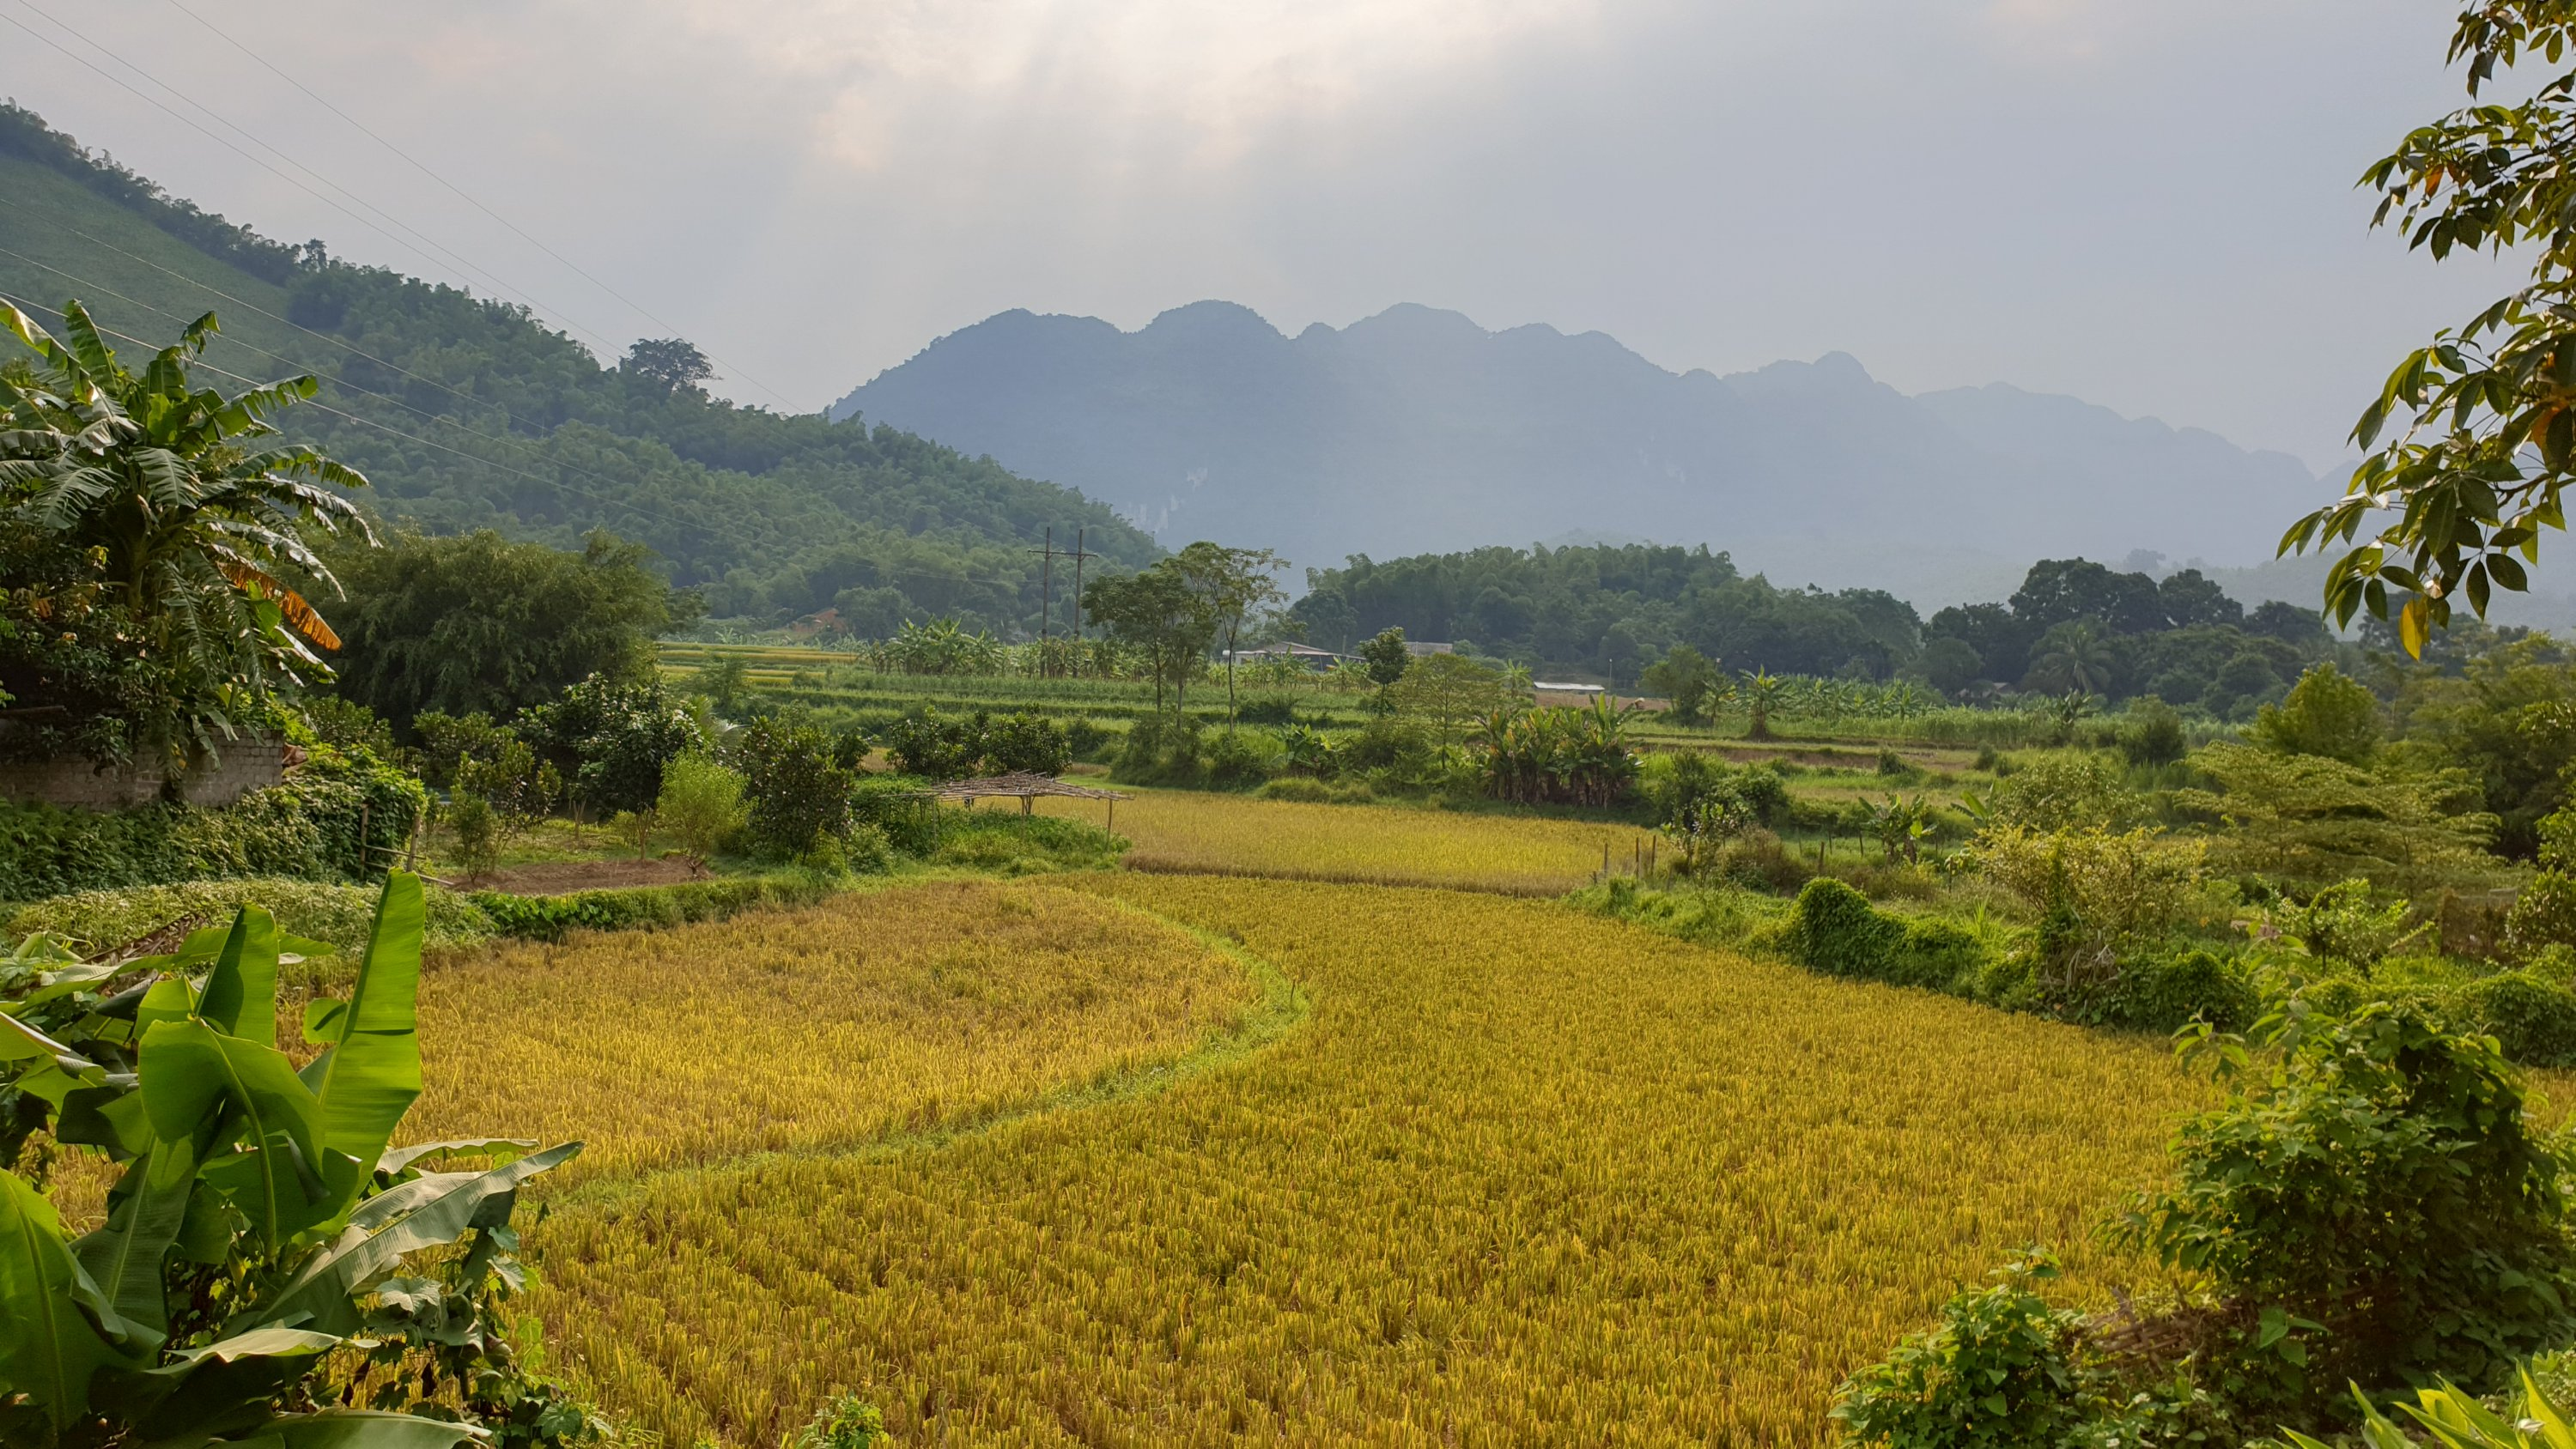 Sun rising in Pu Luong over rice fields and mountains